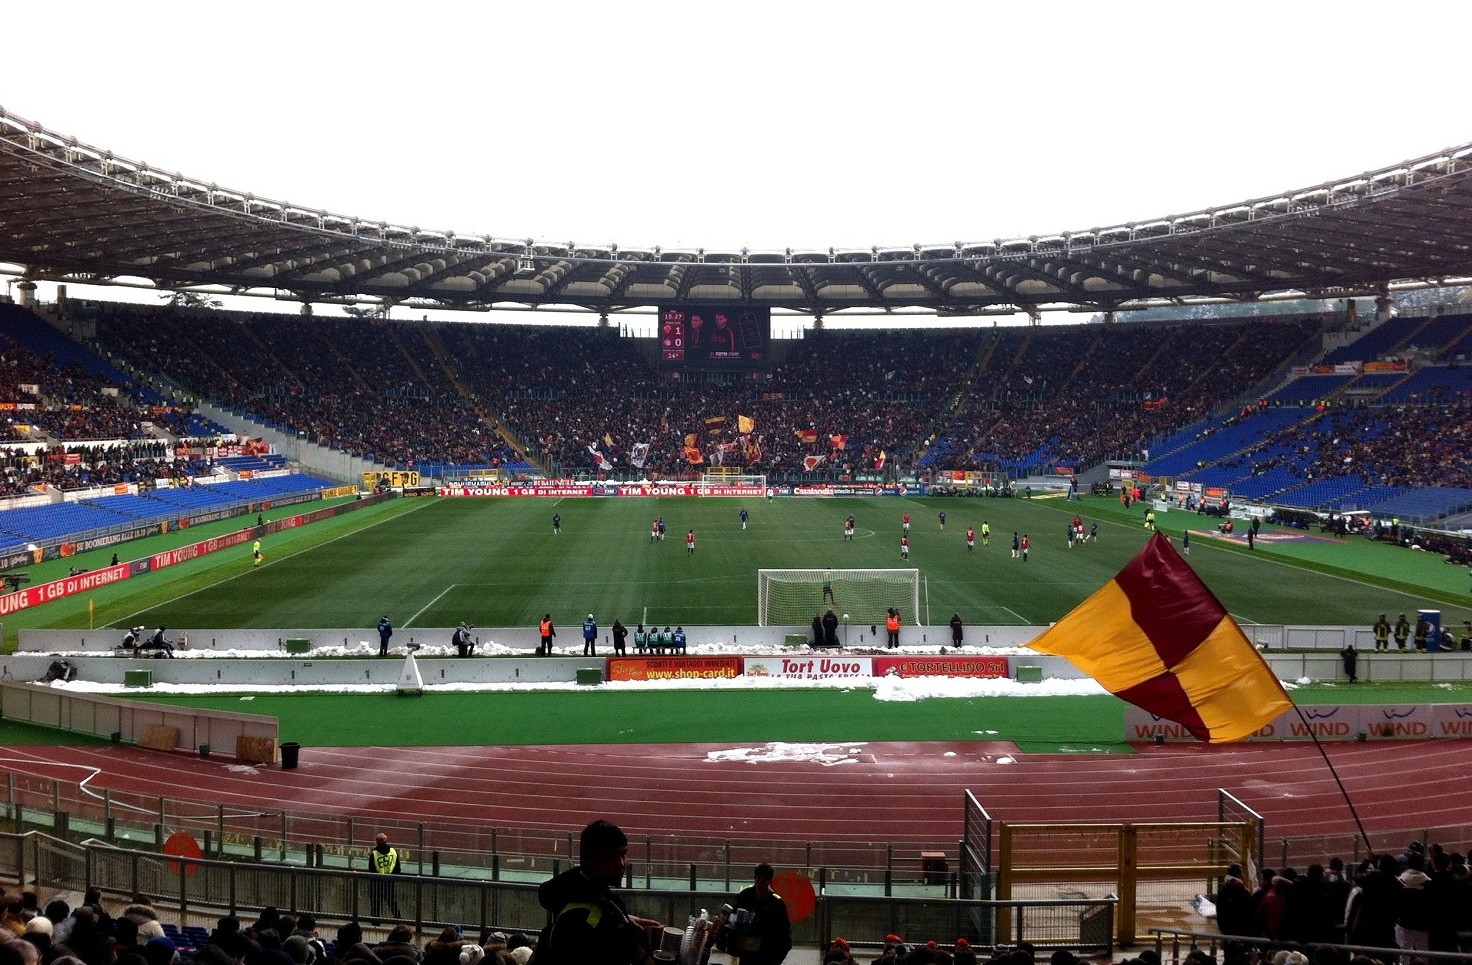 Roma Bologna Frosinone streaming live gr